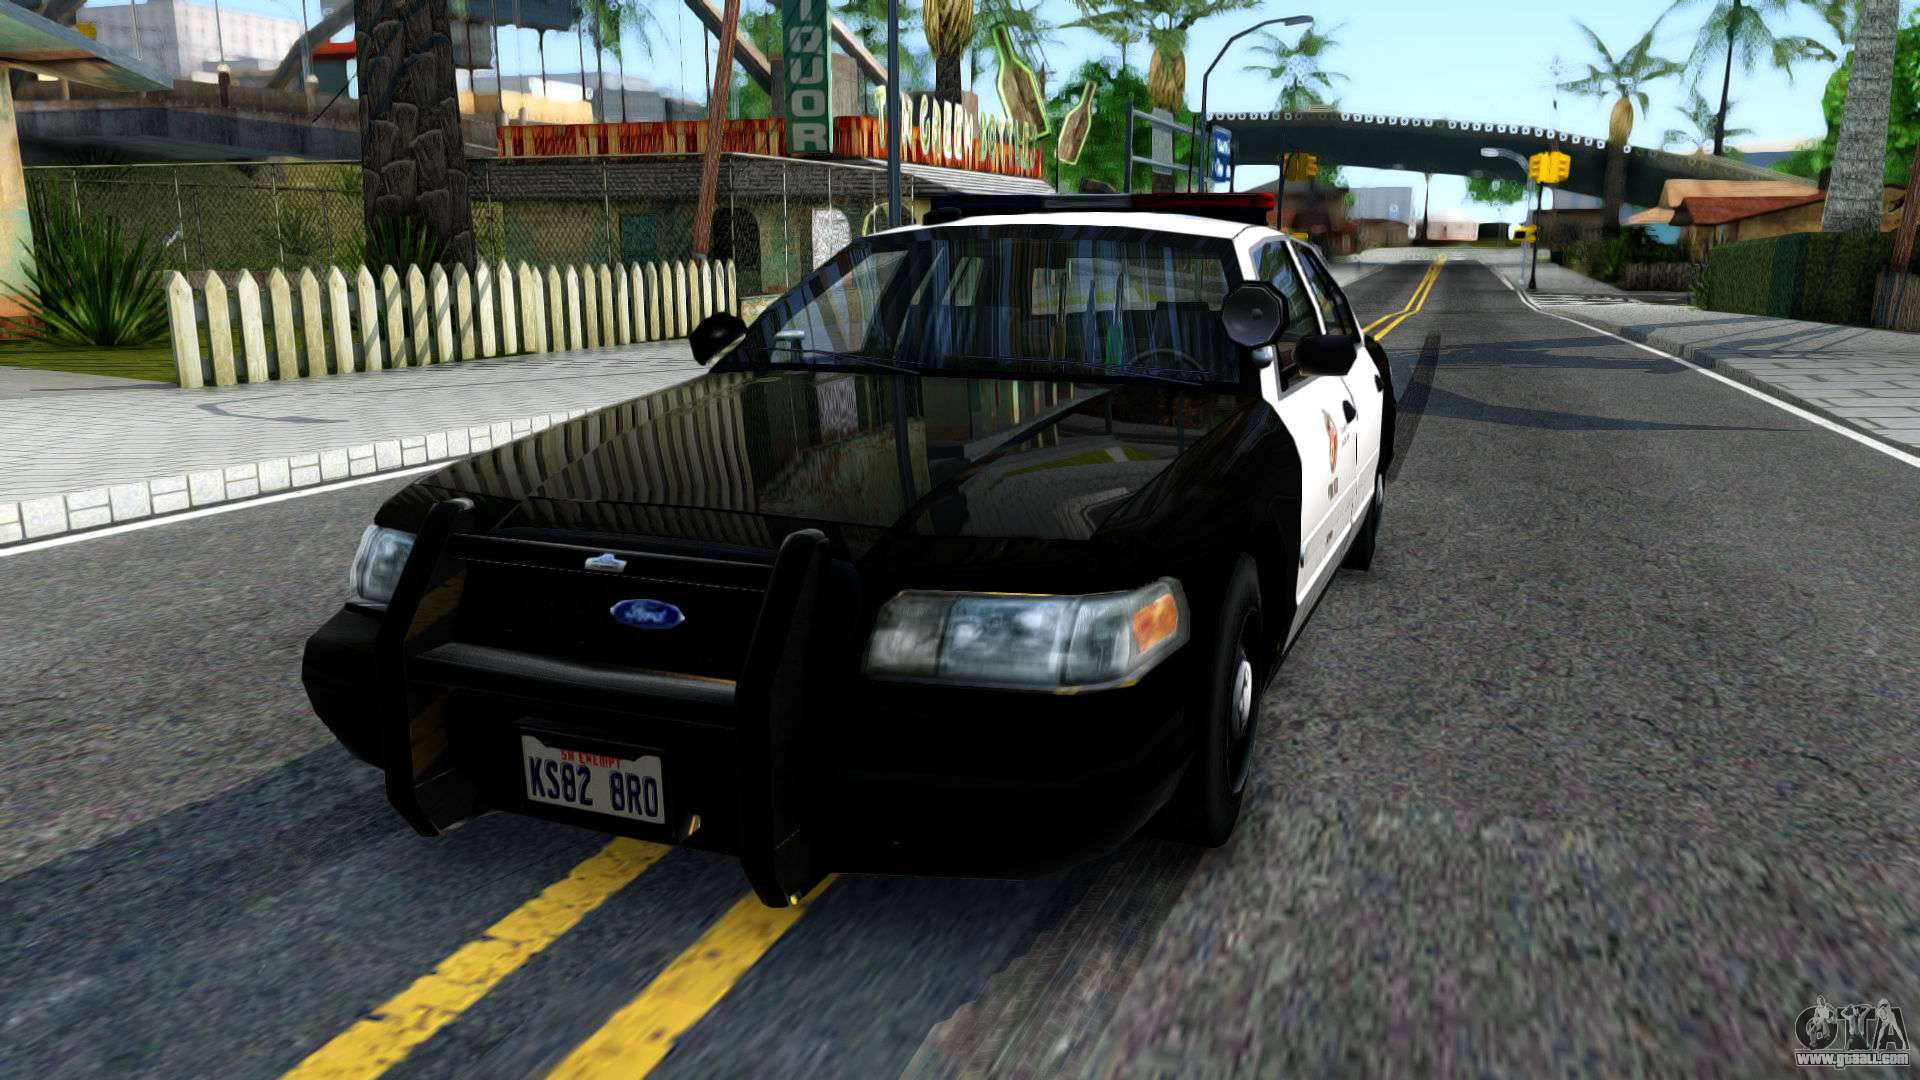 Ford Crown Victoria Police for GTA San Andreas Gta San Andreas Police Cars